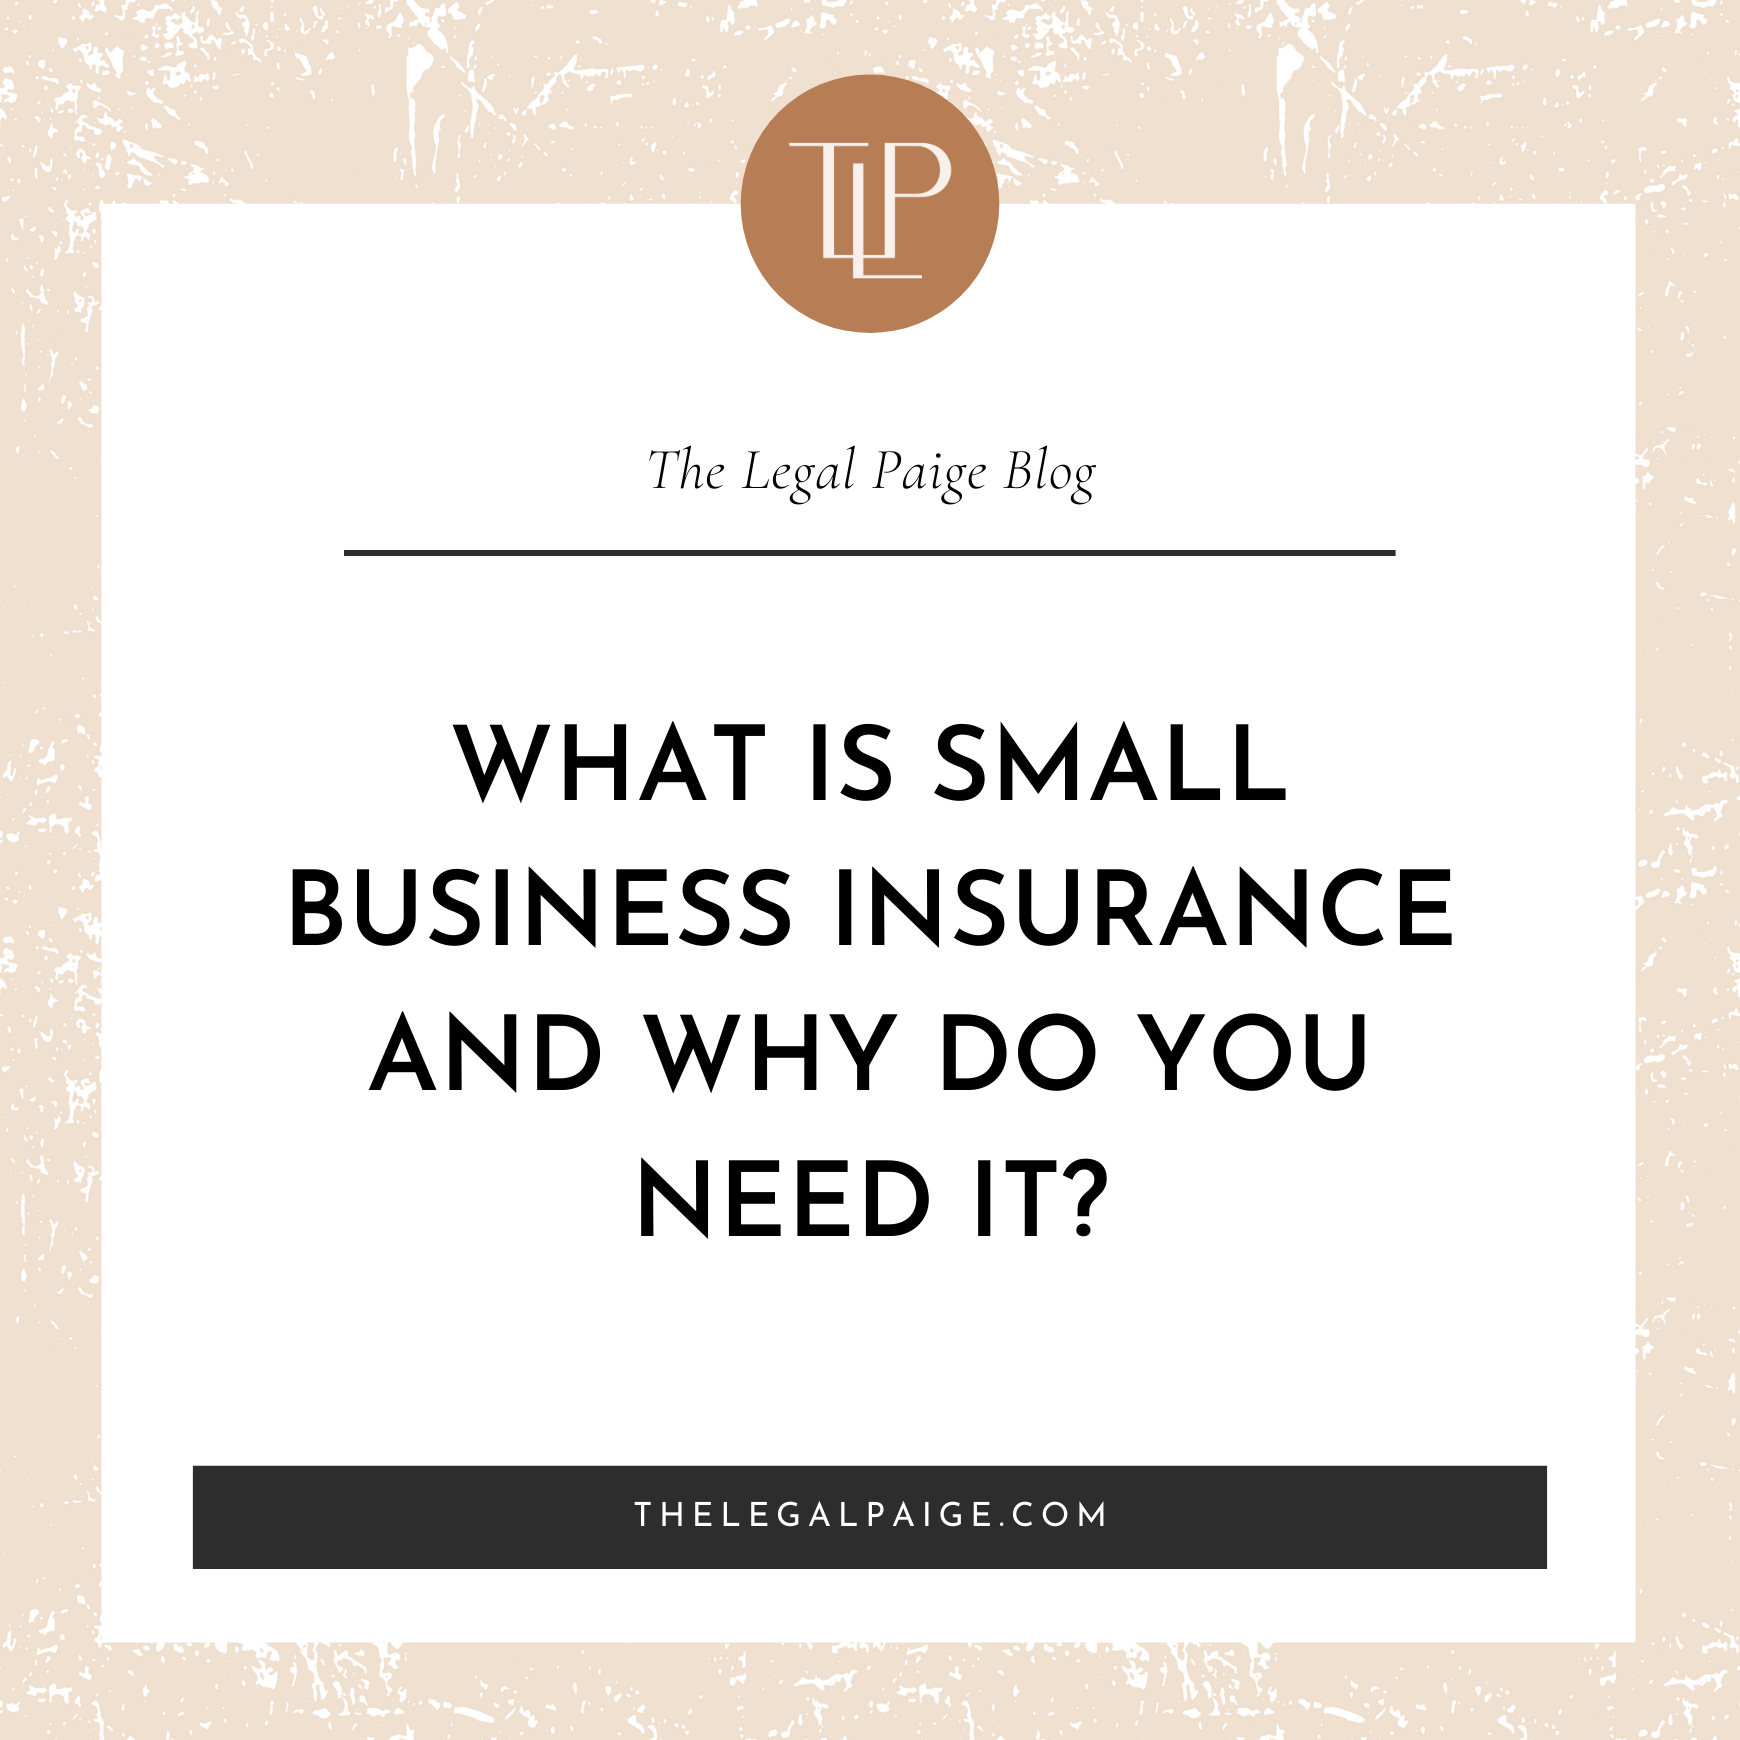 What Is Small Business Insurance and Why Do You Need It?